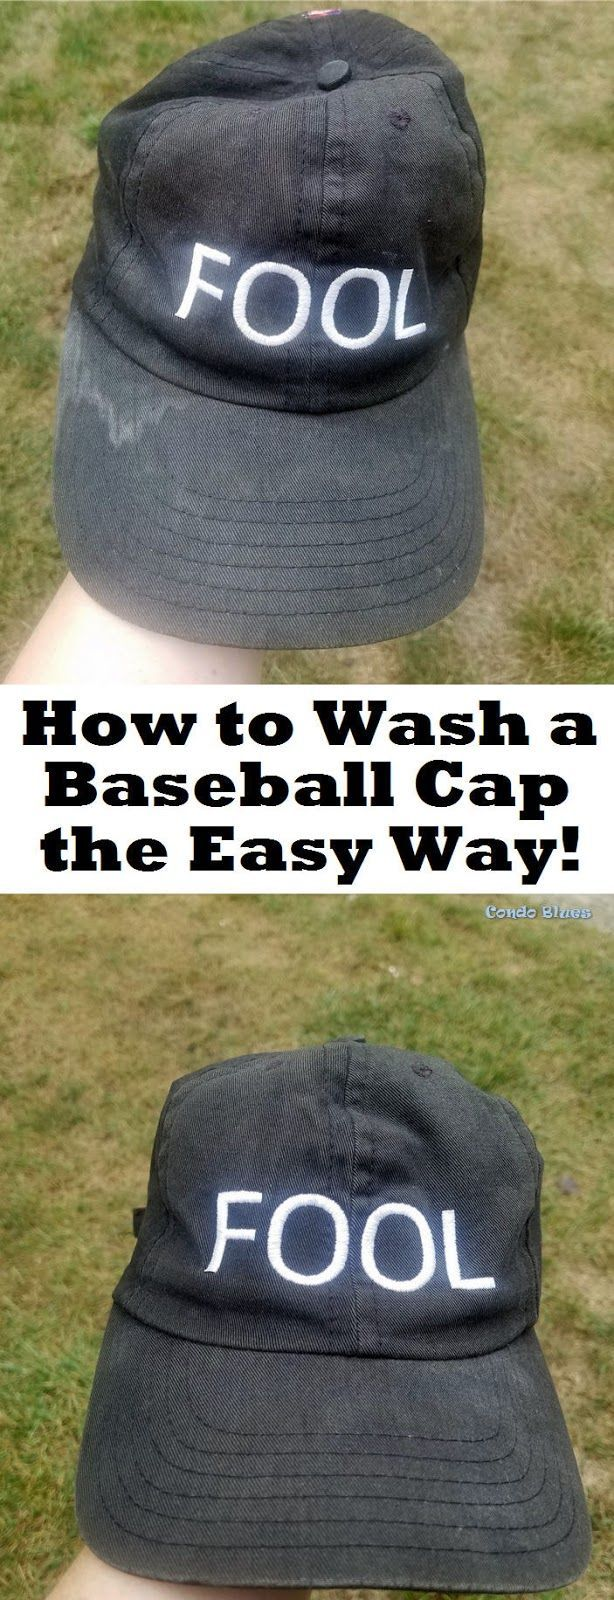 How to Wash a Baseball Cap the Easy Way How to wash a baseball cricket beanie or flat cap the quick and easy way that will not ruin the hat